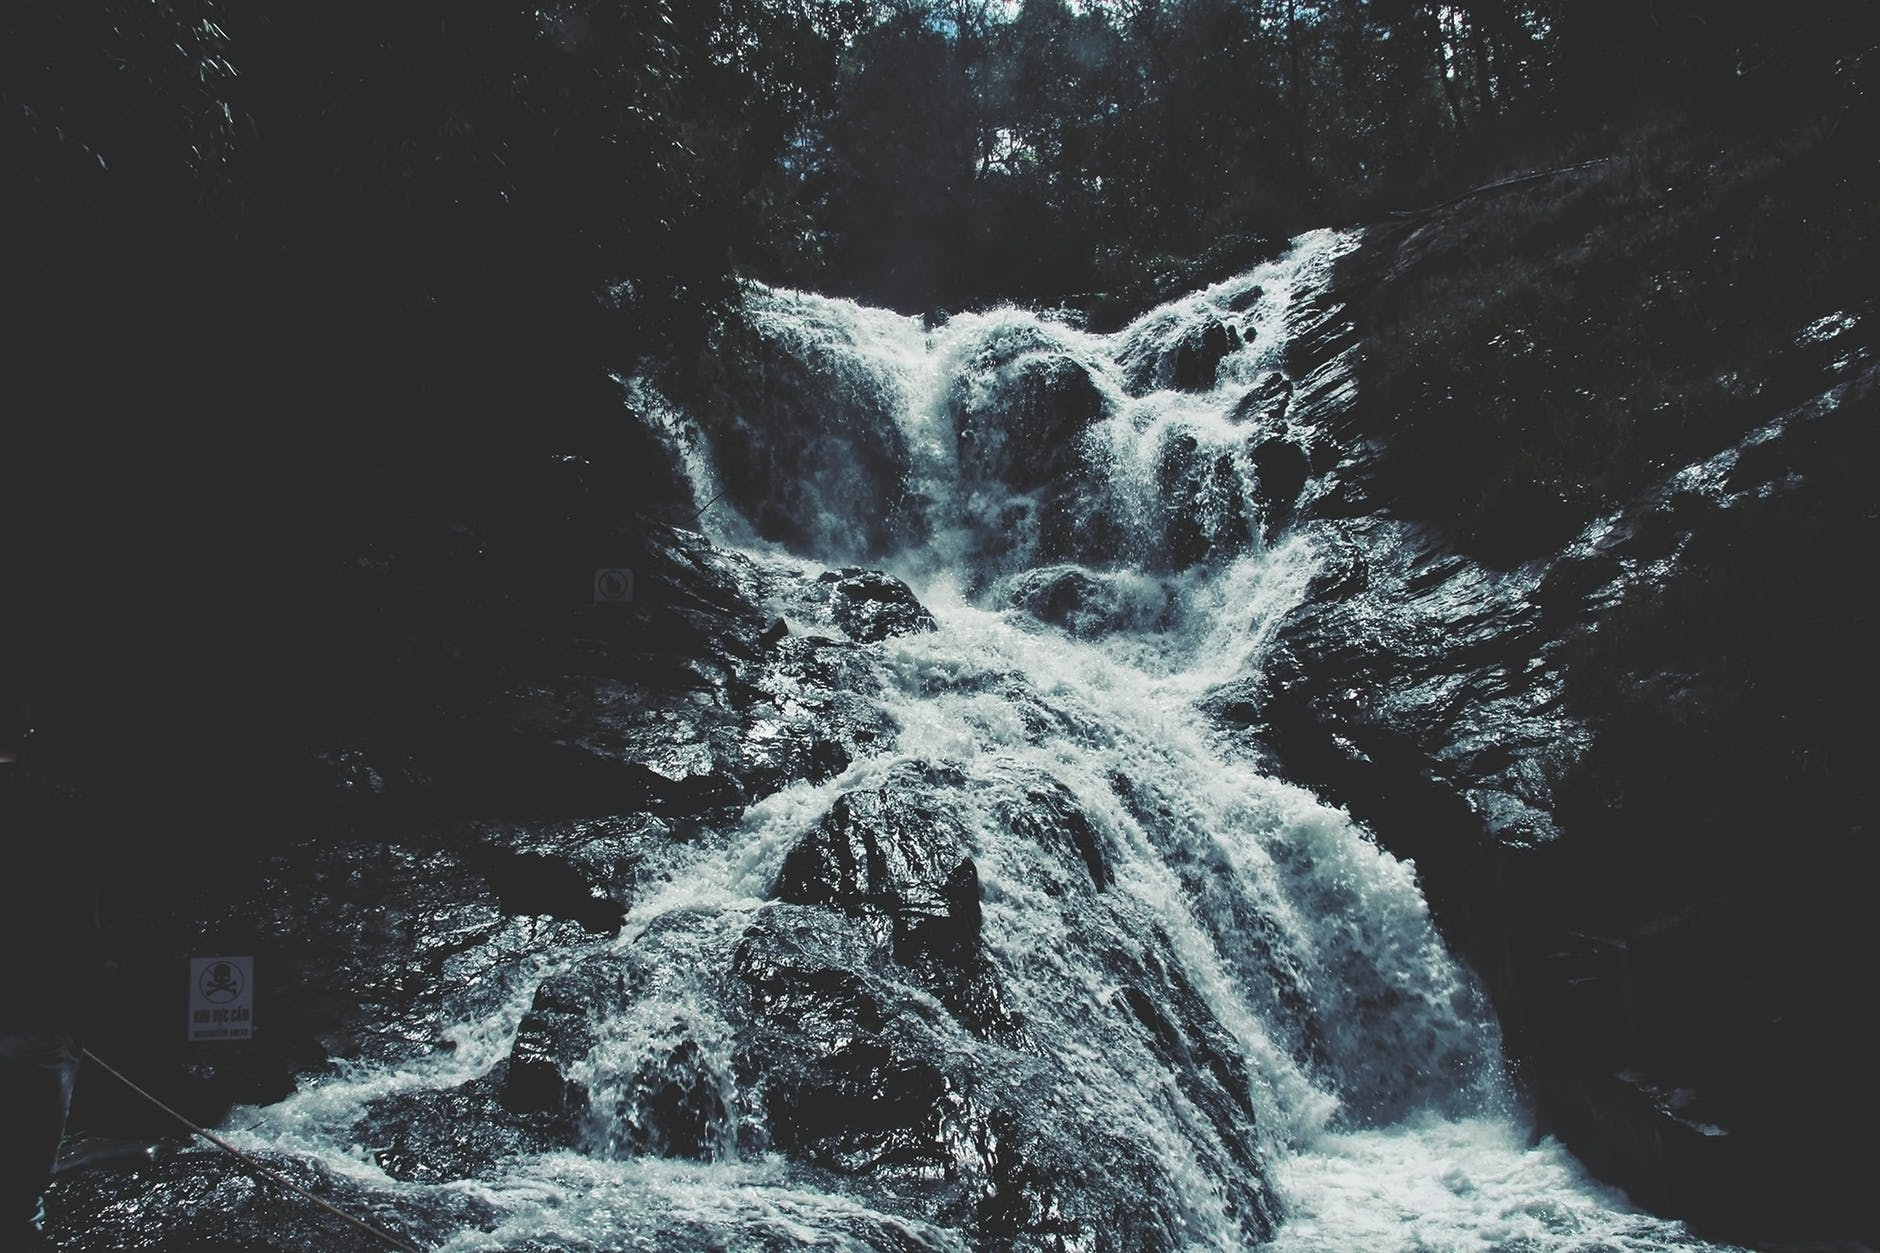 grayscale of waterfalls